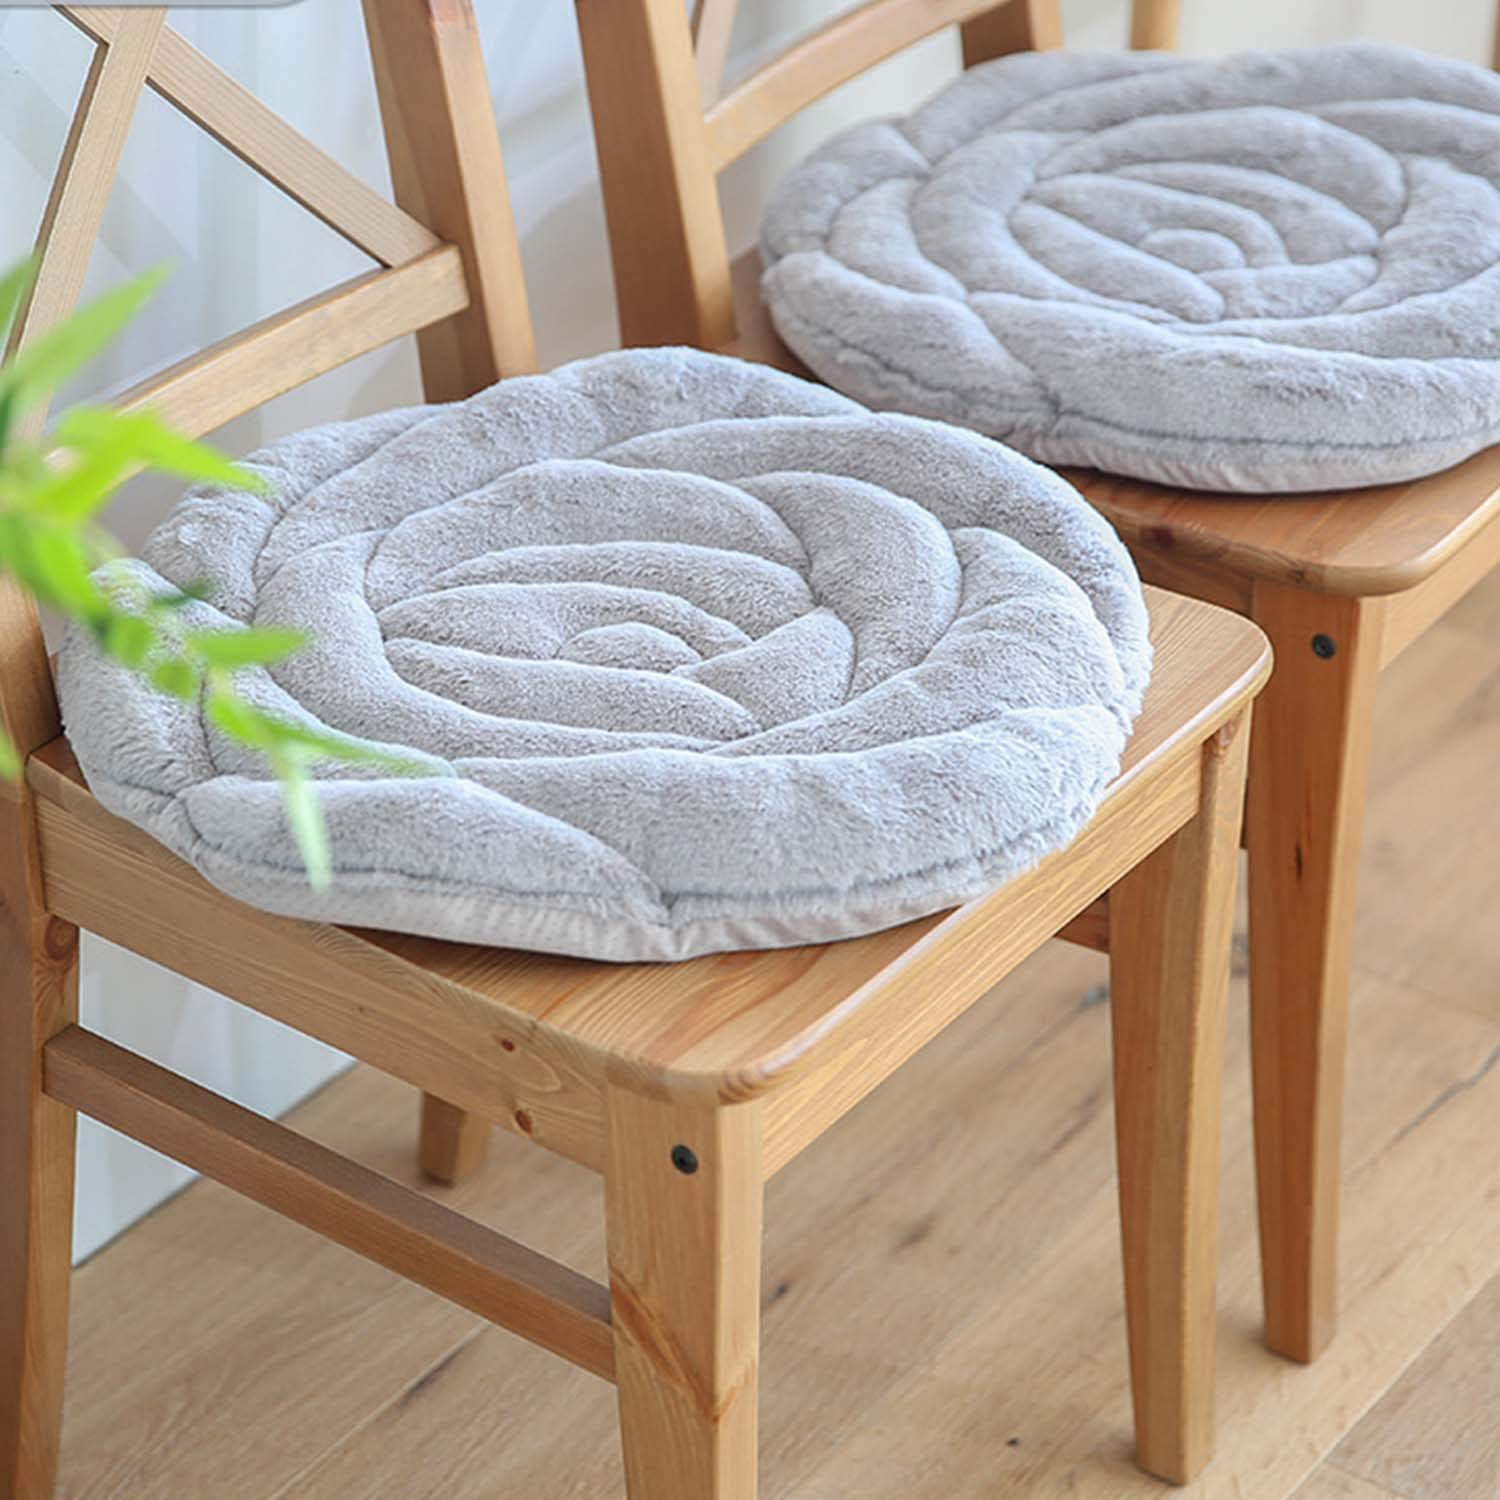 Chair Pad Seat Cushion Fashion Seat Pad Chair Cushions Pads Kitchen Chair  Pads Dining Chair Cushions Sofa Armchairs Wheelchair Back Chair Pads Chair